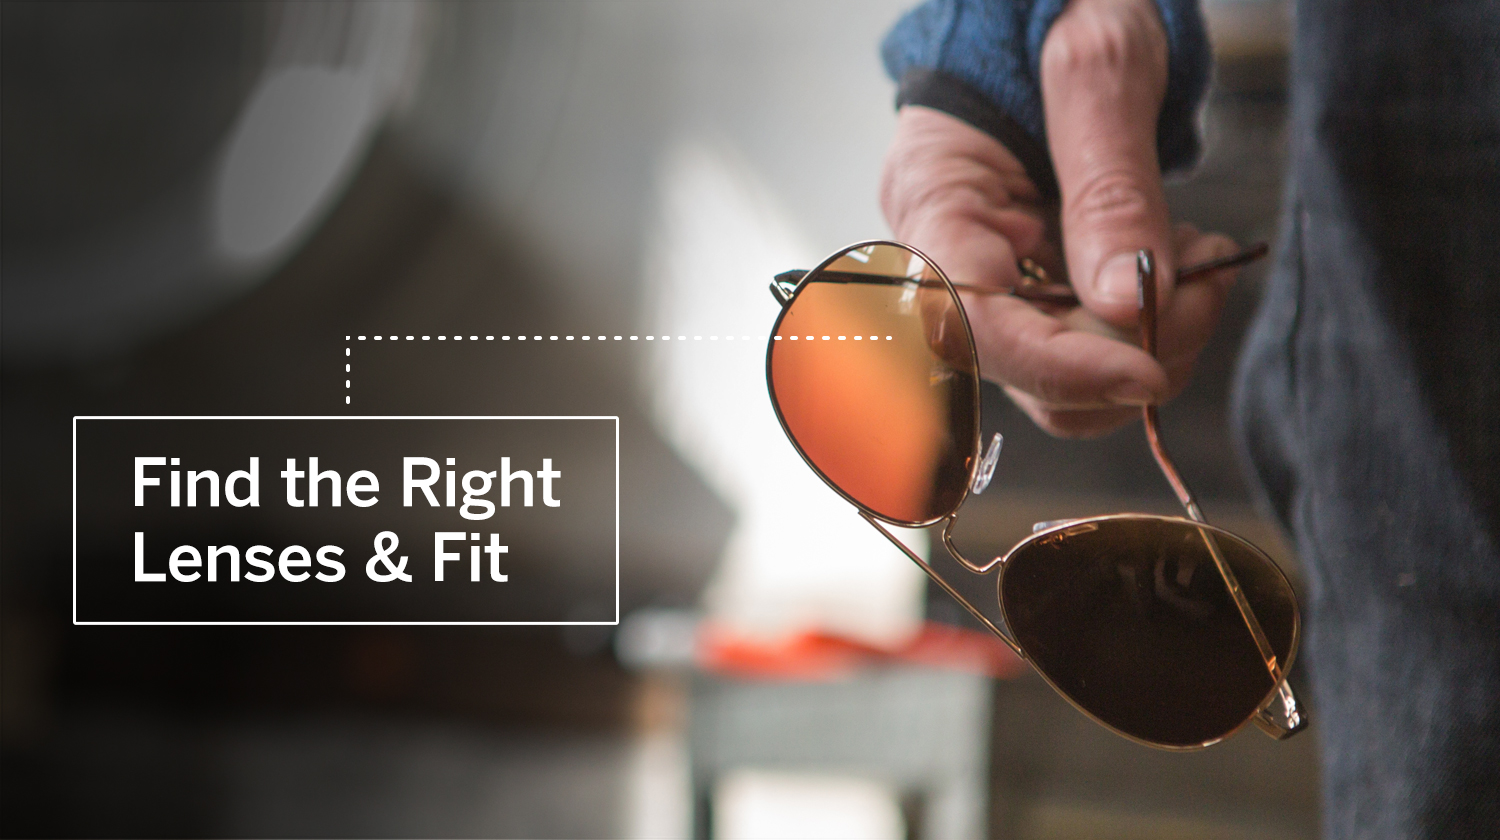 Finding the Right Sunglass Lenses